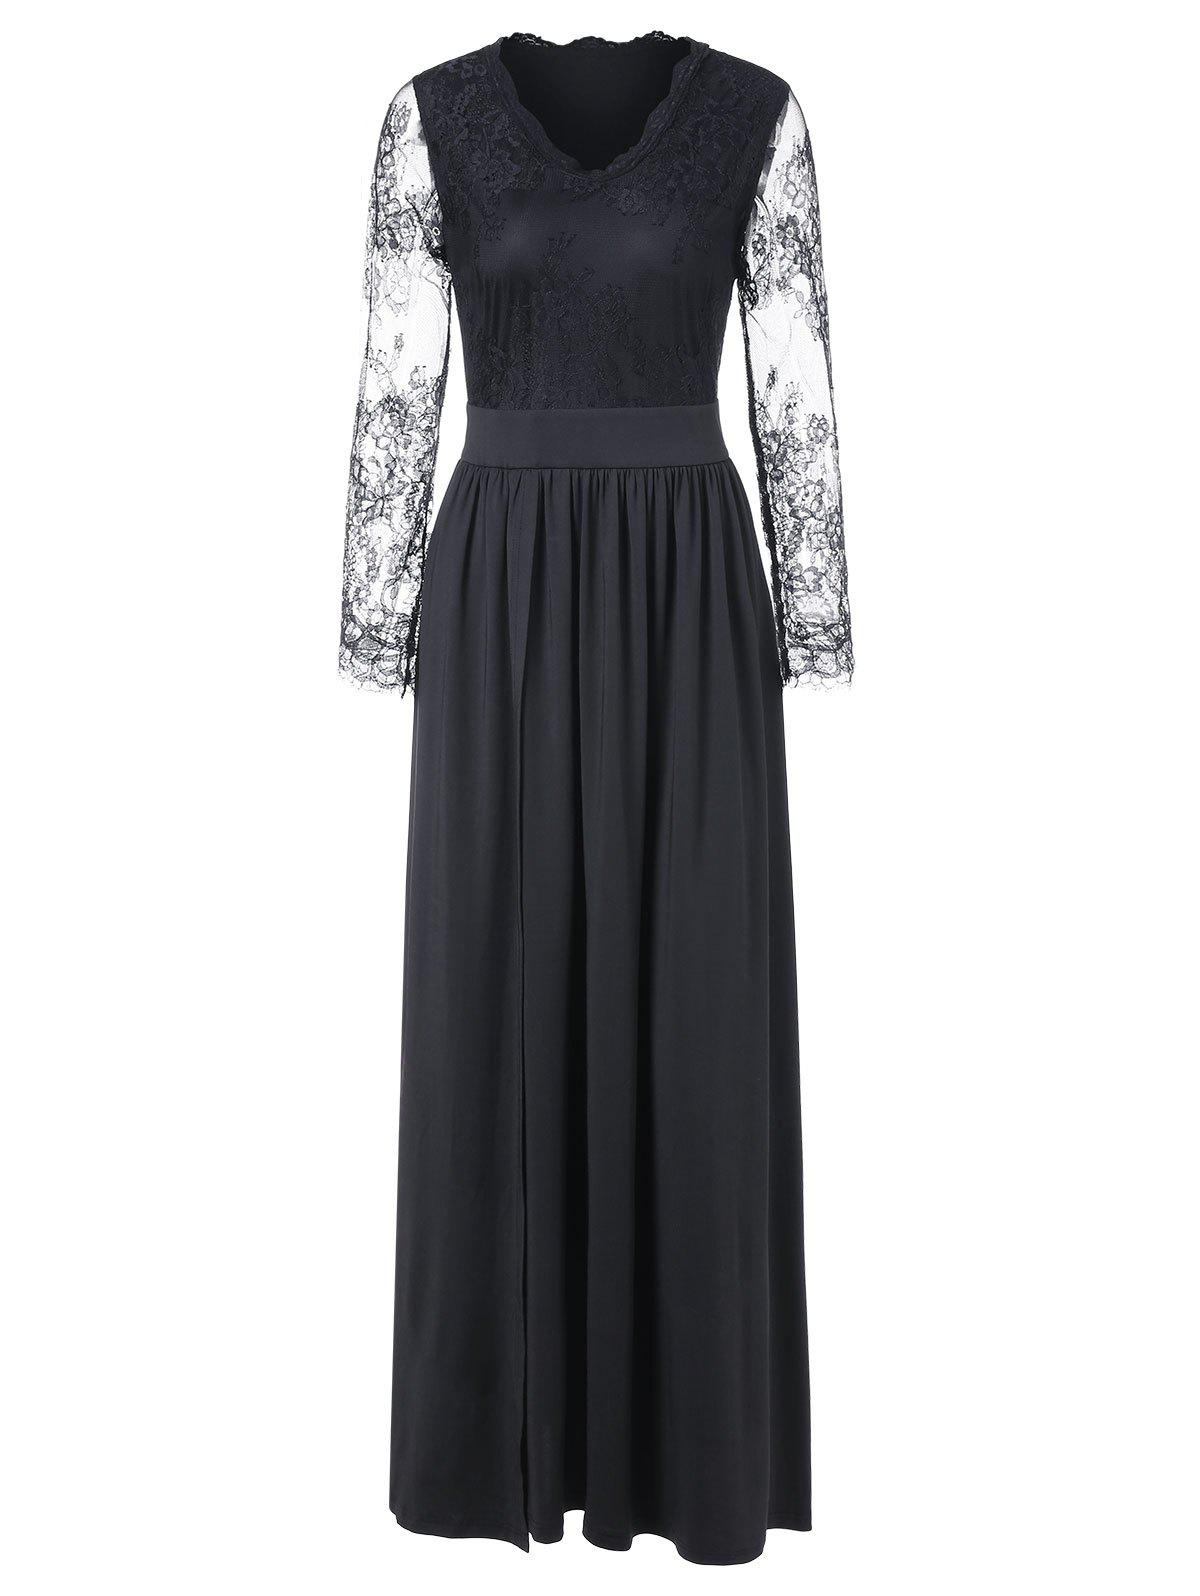 New Lace Sleeve Maxi Cocktail Dress